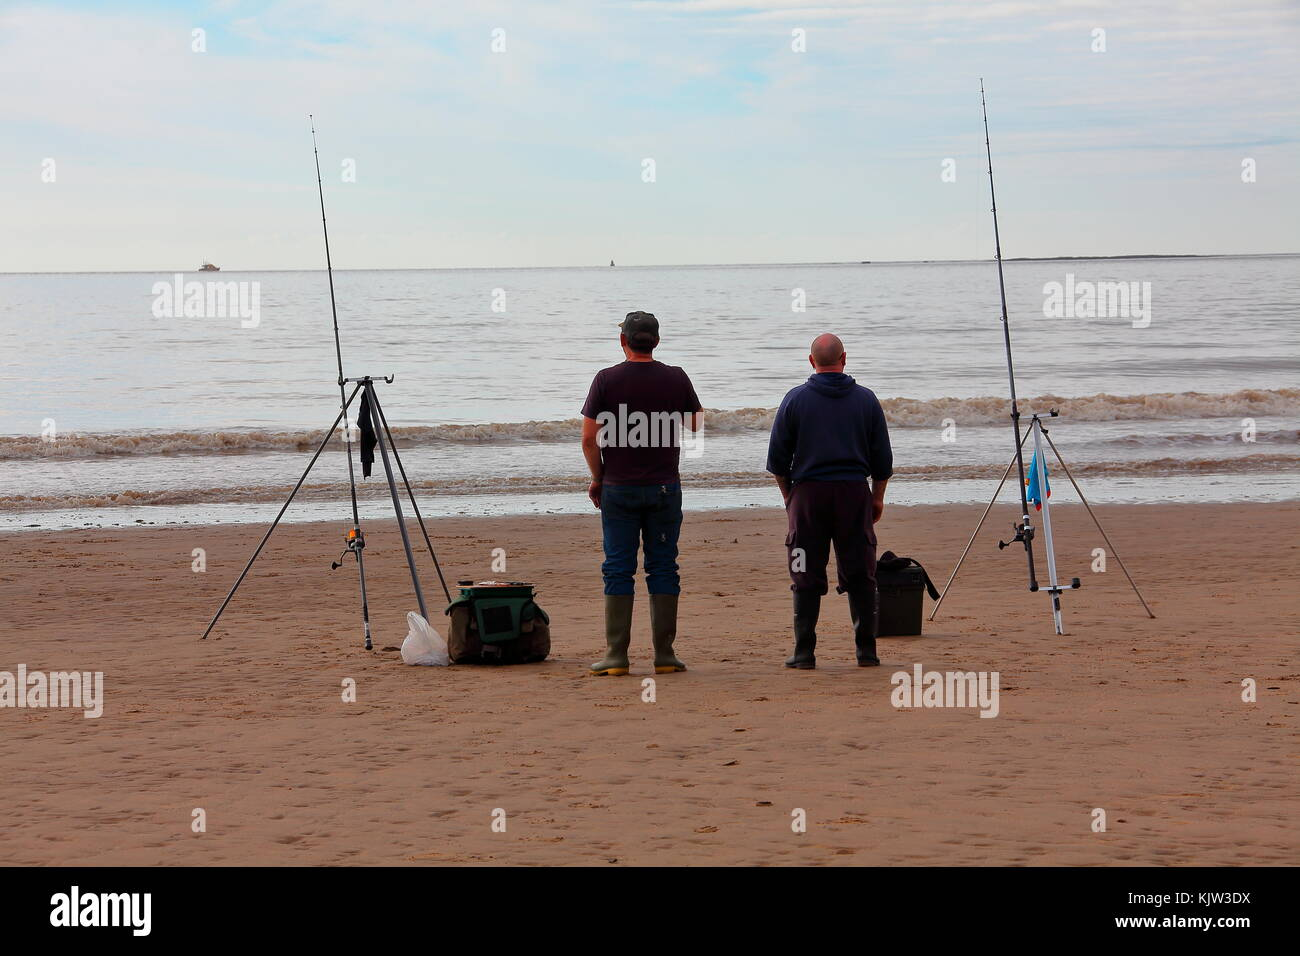 Two fishermen standing on the beach at low tide with fishing rods propped up on tripods waiting for a 'bite' - Stock Image